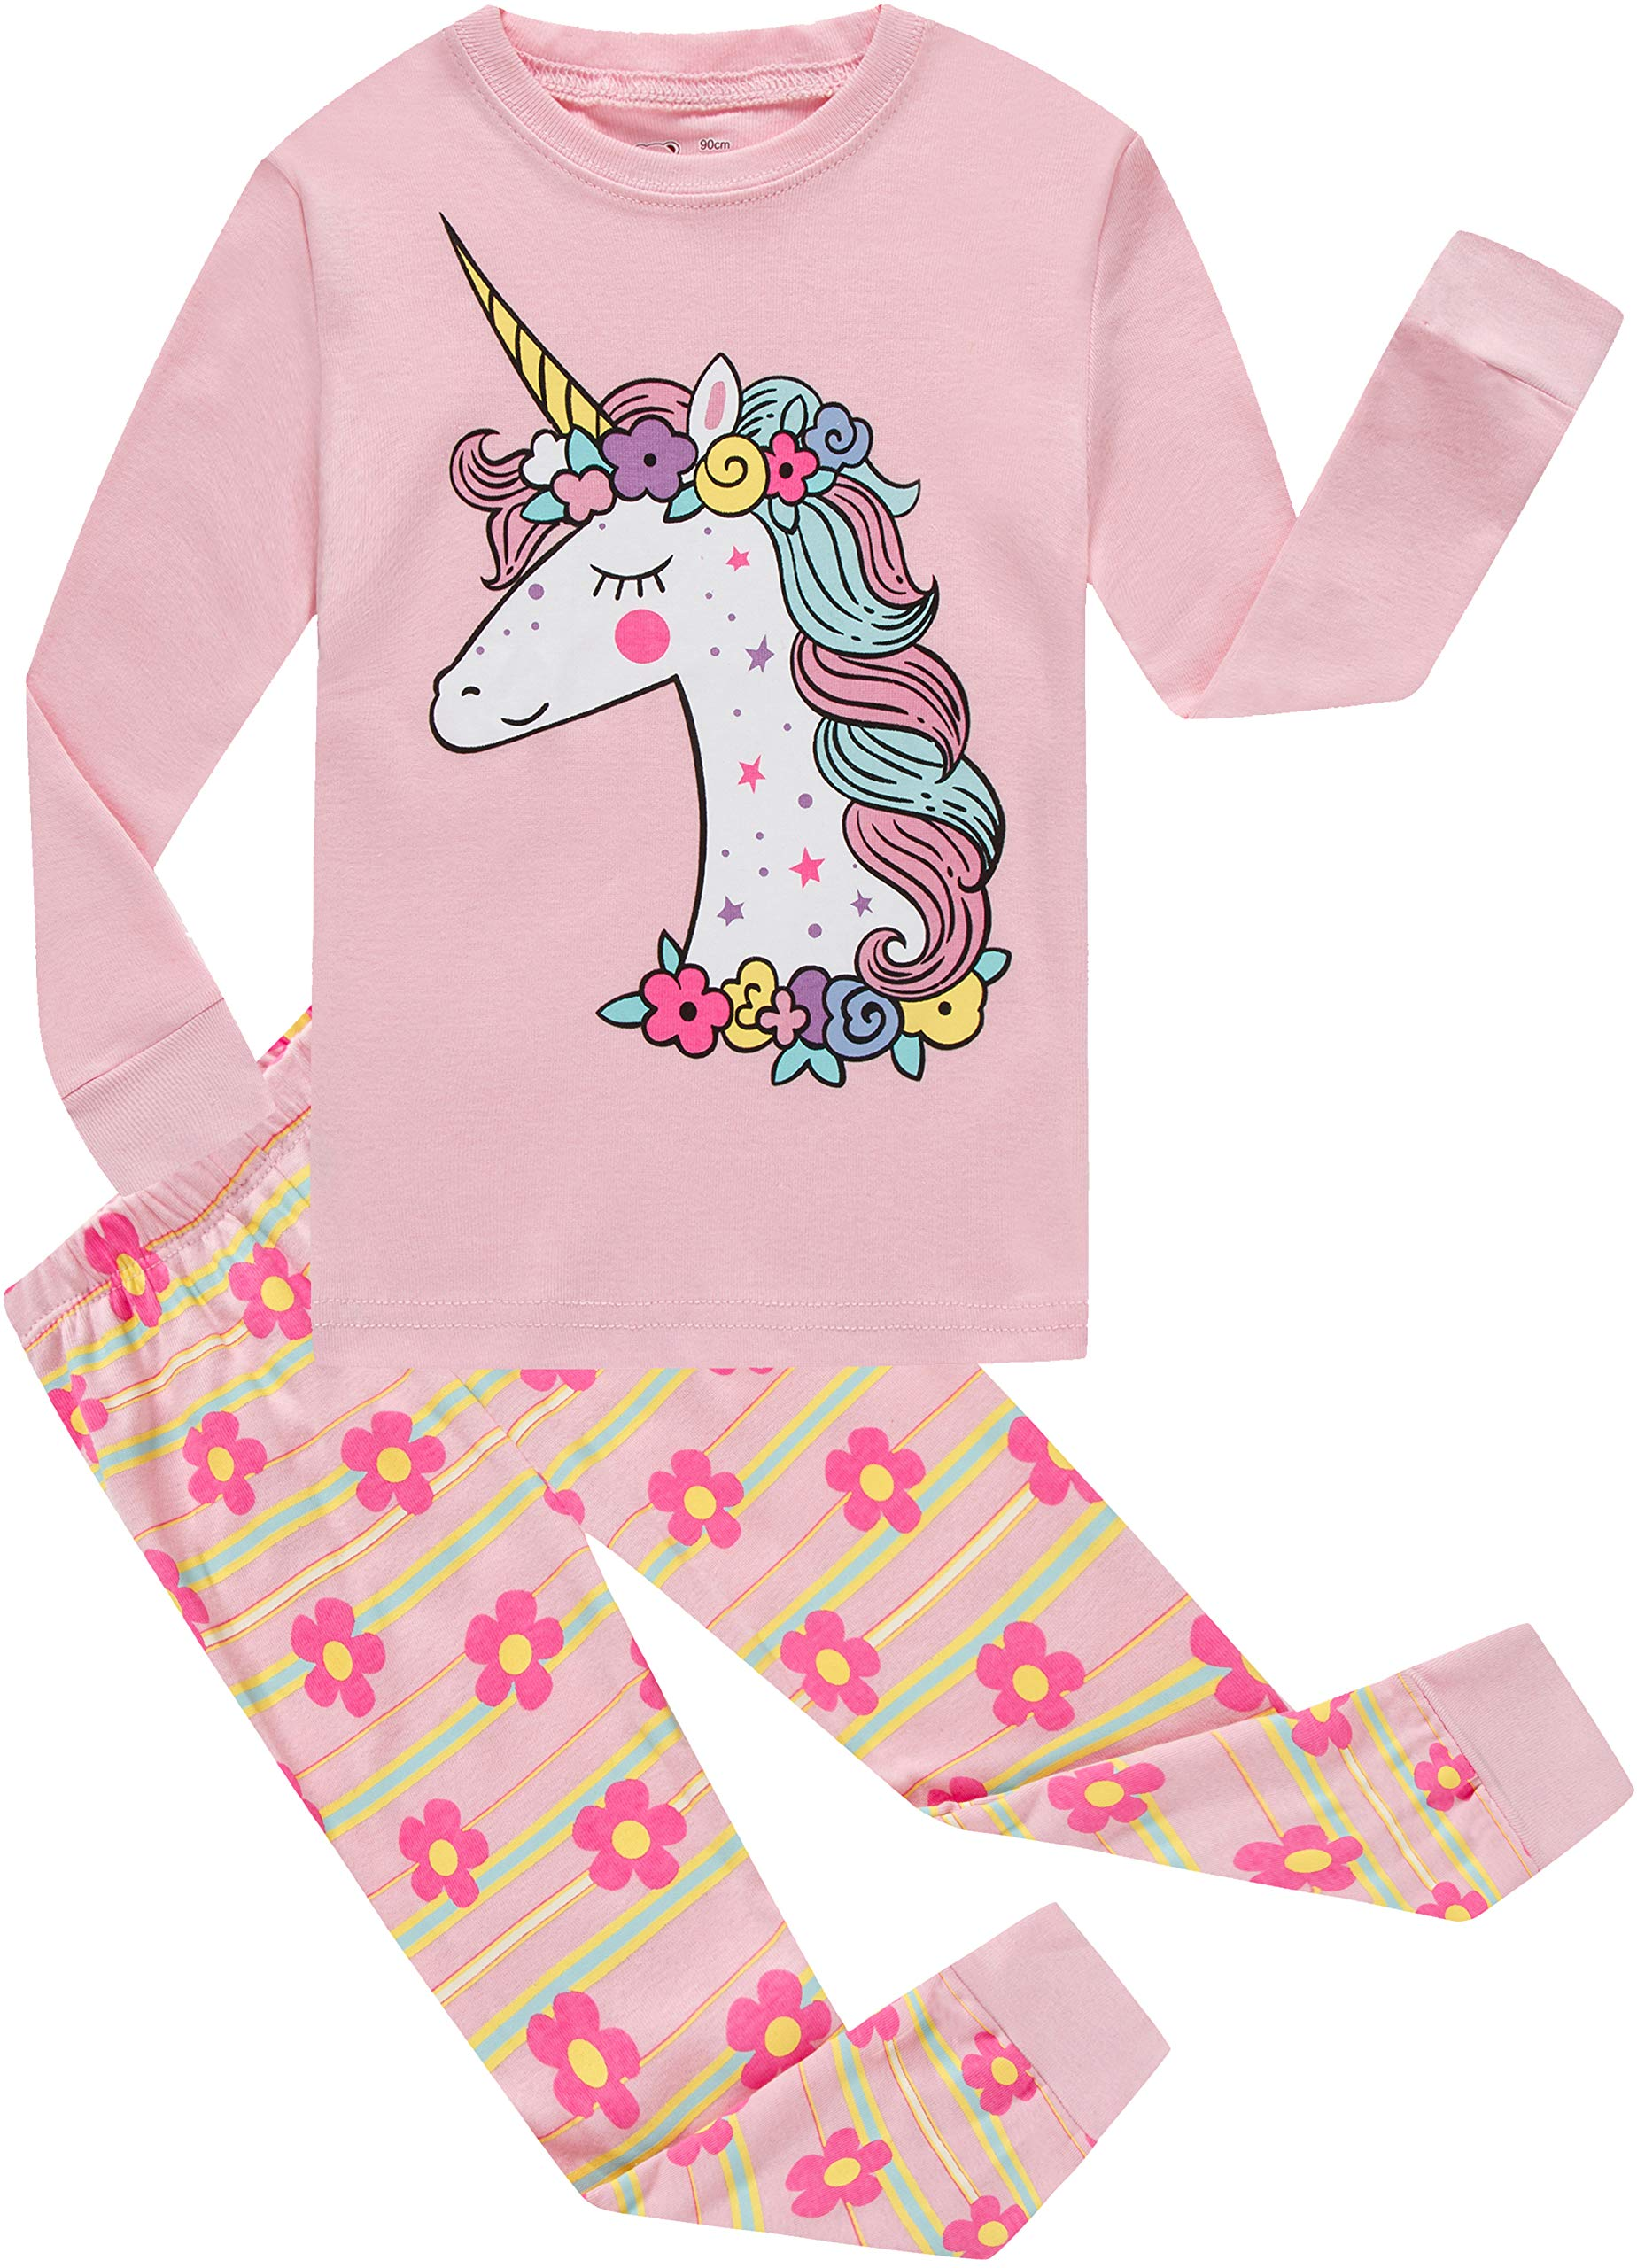 Little Girls Pajamas Baby Children Horse Pyjamas 100% Cotton Pink Toddler Sleepwear Size 2